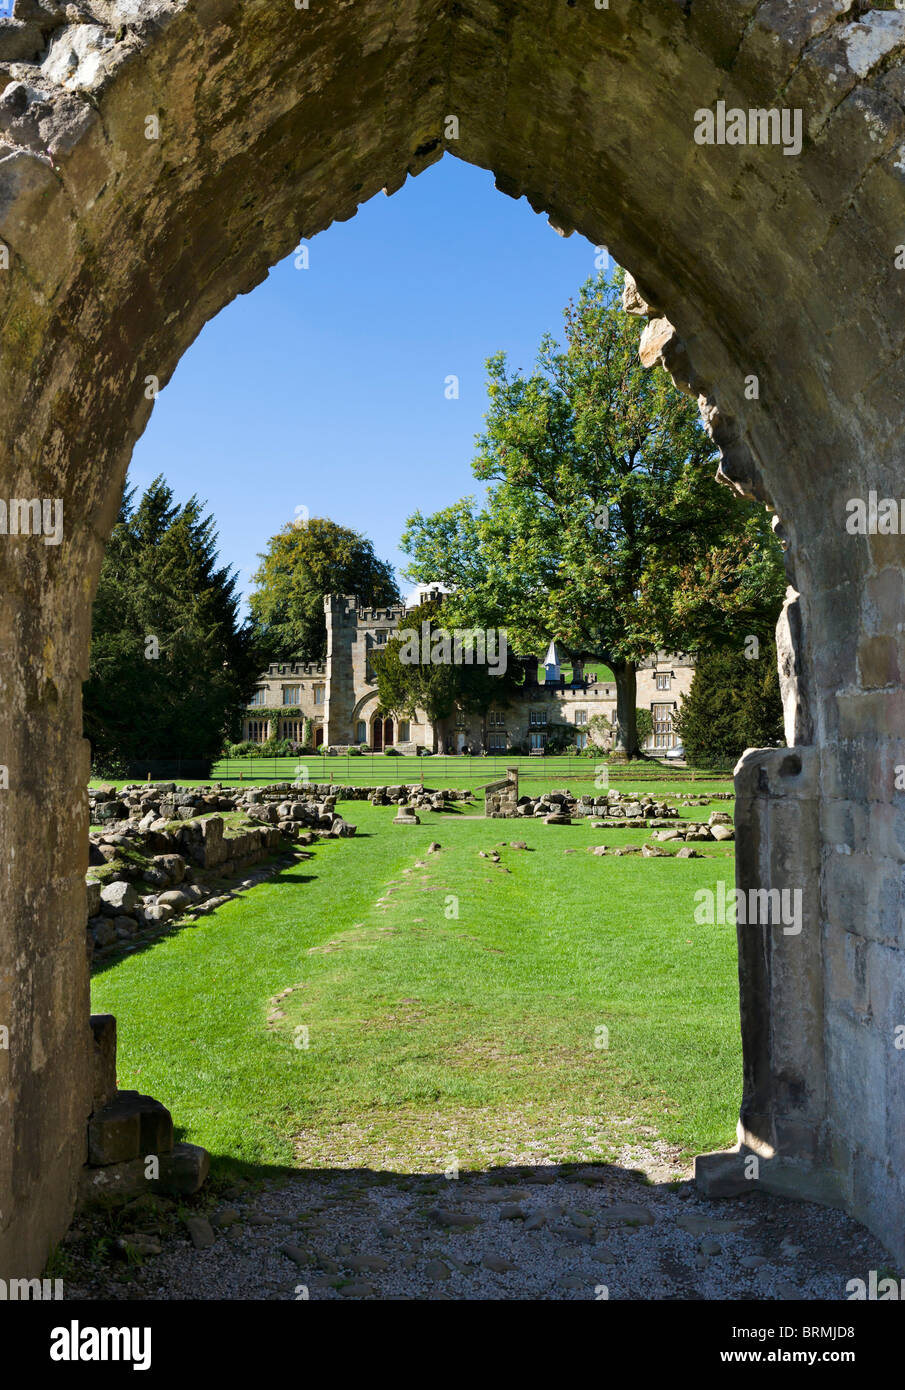 View through an arch in the ruins of Bolton Priory, Bolton Abbey, Wharfedale, Yorkshire Dales, North Yorkshire, - Stock Image